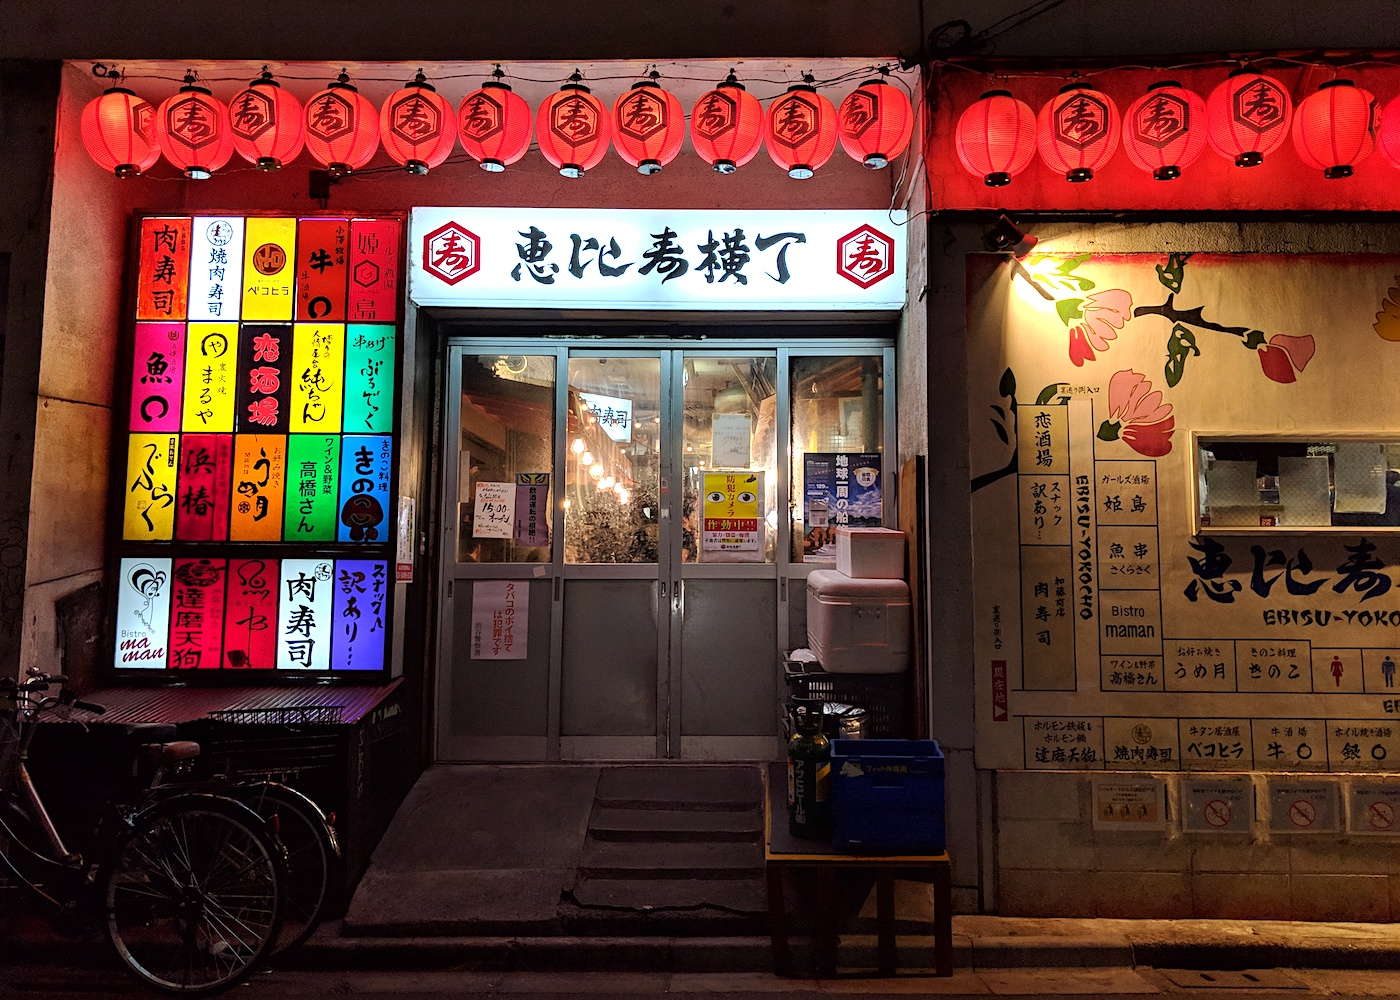 Ebisu and Daikanyama are Tokyo's hip neighbourhoods for those in the know